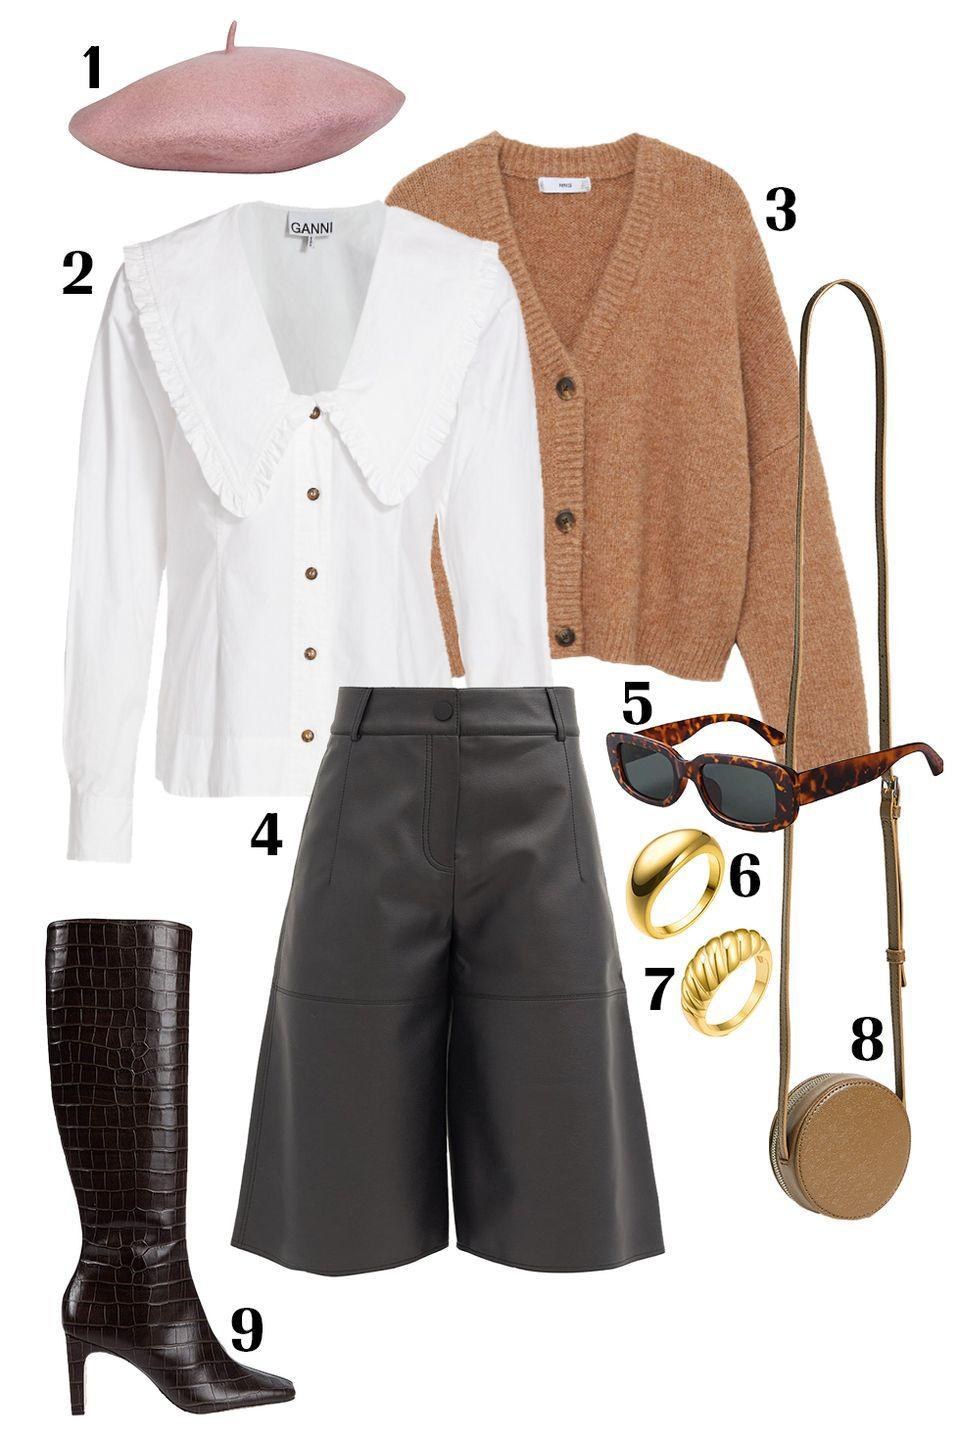 """<p>The exaggerated '70s collared blouse, leather culottes, and beret might be an intimidating look to pull off, but each of these pieces will help you step out of your box (I promise). Layer this blouse under a knit cardigan so the wide collar lays on top; sport a pair high-rise culottes with tall croc-skin boots that will pass the hem of the trouser; and top it off with a felt beret tilted slightly to the side. Finish off this look with your go-to sunnies, a mini shoulder bag, and your daily jewelry. </p><p>Shop the pieces:<em> <strong>1.</strong> </em><em><a href=""""https://hatattack.com/products/fall-wool-beret?variant=32107184685145"""" rel=""""nofollow noopener"""" target=""""_blank"""" data-ylk=""""slk:Hat Attack Beret"""" class=""""link rapid-noclick-resp"""">Hat Attack Beret</a></em><em>,</em> $32; <strong>2.</strong> <em><a href=""""https://www.saksfifthavenue.com/product/ganni-cotton-poplin-pilgrim-collar-top-0400013241159.html?"""" rel=""""nofollow noopener"""" target=""""_blank"""" data-ylk=""""slk:Ganni Blouse"""" class=""""link rapid-noclick-resp"""">Ganni Blouse</a></em>, $165; <strong>3.</strong> <em><a href=""""https://shop.mango.com/us/women/cardigans-and-sweaters-cardigans/button-knit-cardigan_77087609.html"""" rel=""""nofollow noopener"""" target=""""_blank"""" data-ylk=""""slk:Mango Cardigan"""" class=""""link rapid-noclick-resp"""">Mango Cardigan</a></em>, $30; <strong>4.</strong> <em><a href=""""https://www.matchesfashion.com/us/products/Vika-2-0-High-rise-faux-leather-culottes--1386610"""" rel=""""nofollow noopener"""" target=""""_blank"""" data-ylk=""""slk:VIKA Faux Leather Culottes"""" class=""""link rapid-noclick-resp"""">VIKA Faux Leather Culottes</a></em>, $186; <strong>5.</strong> <em><a href=""""https://www.amazon.com/GIFIORE-Rectangle-Sunglasses-Fashion-Protection/dp/B085NV2WQJ/ref=sr_1_10?"""" rel=""""nofollow noopener"""" target=""""_blank"""" data-ylk=""""slk:Amazon Sunglasses"""" class=""""link rapid-noclick-resp"""">Amazon Sunglasses</a></em>, $10; <strong>6.</strong> <em><a href=""""https://www.amazon.com/dp/B08LG2M9J3/ref=twister_B08LG7XL6L?th=1"""" rel=""""nofollow noopener"""" target"""